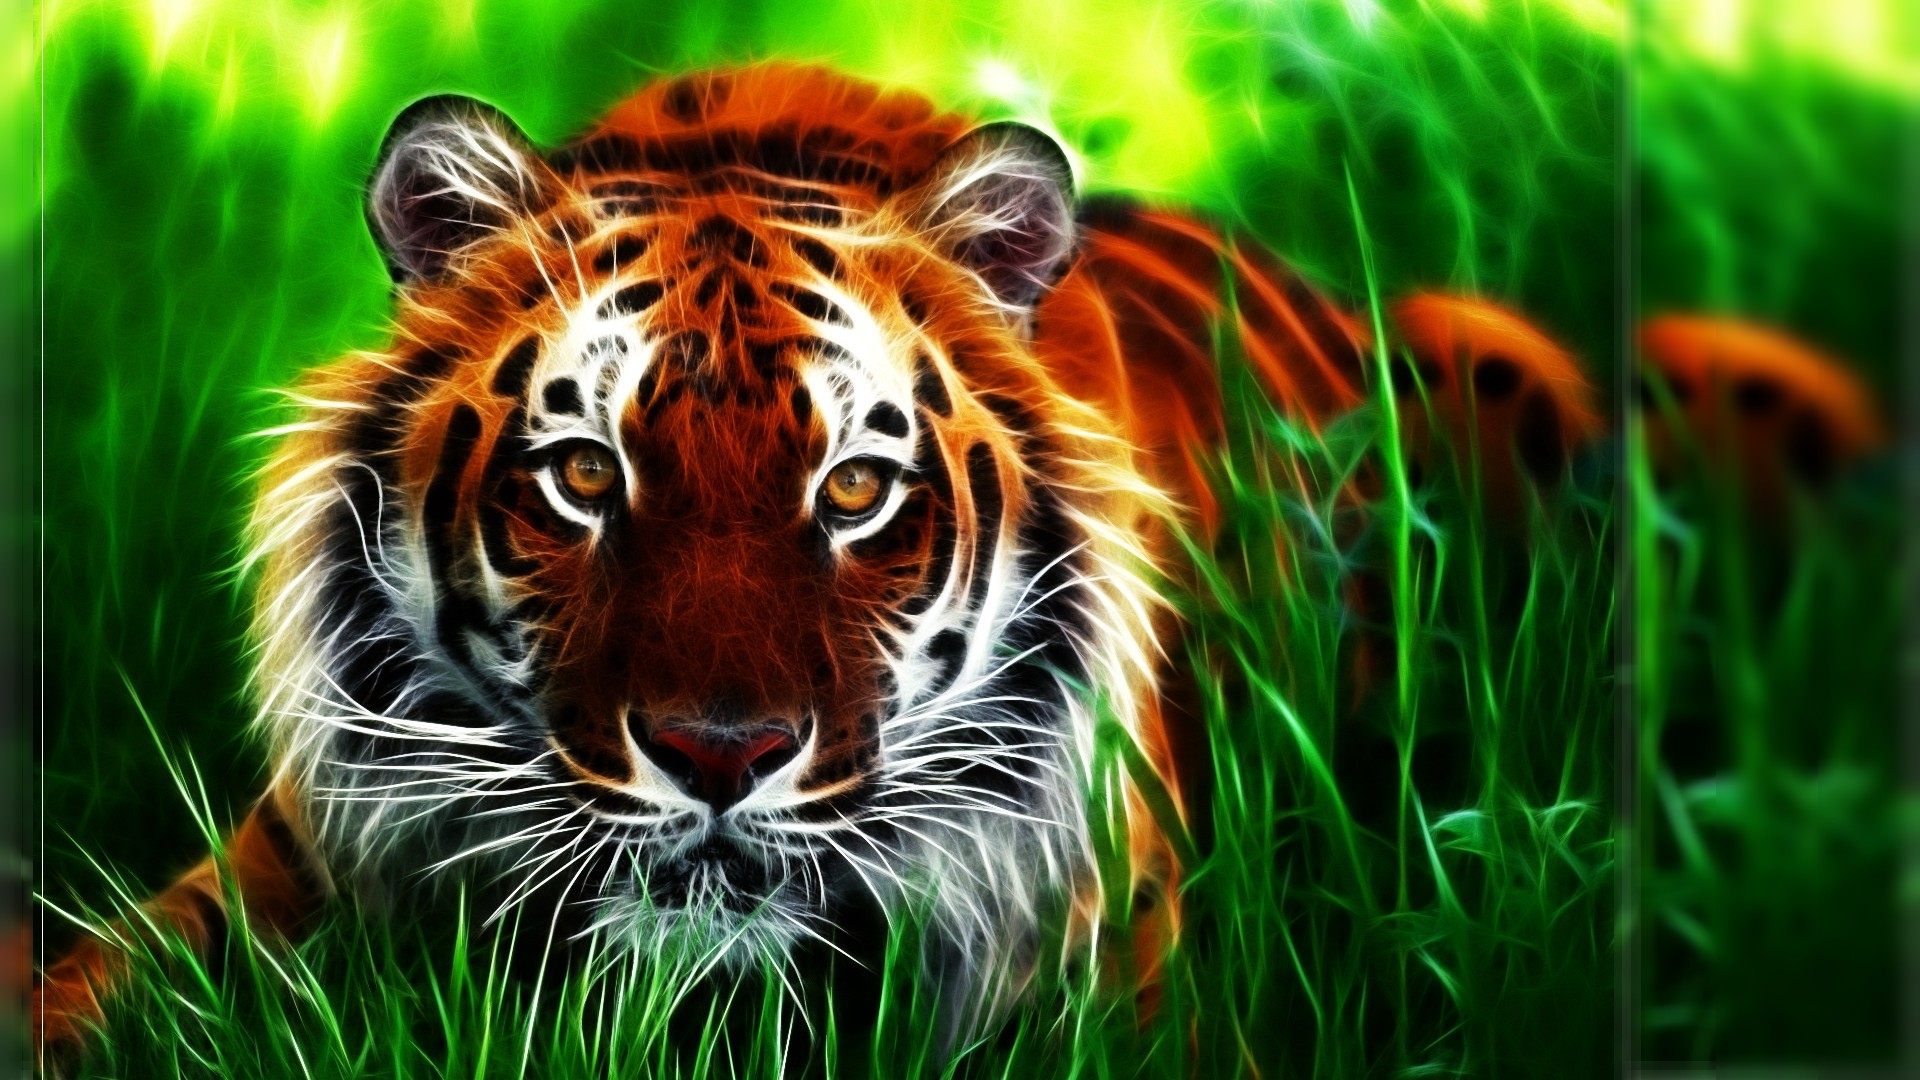 Cool Tiger Wallpapers - WallpaperSafari